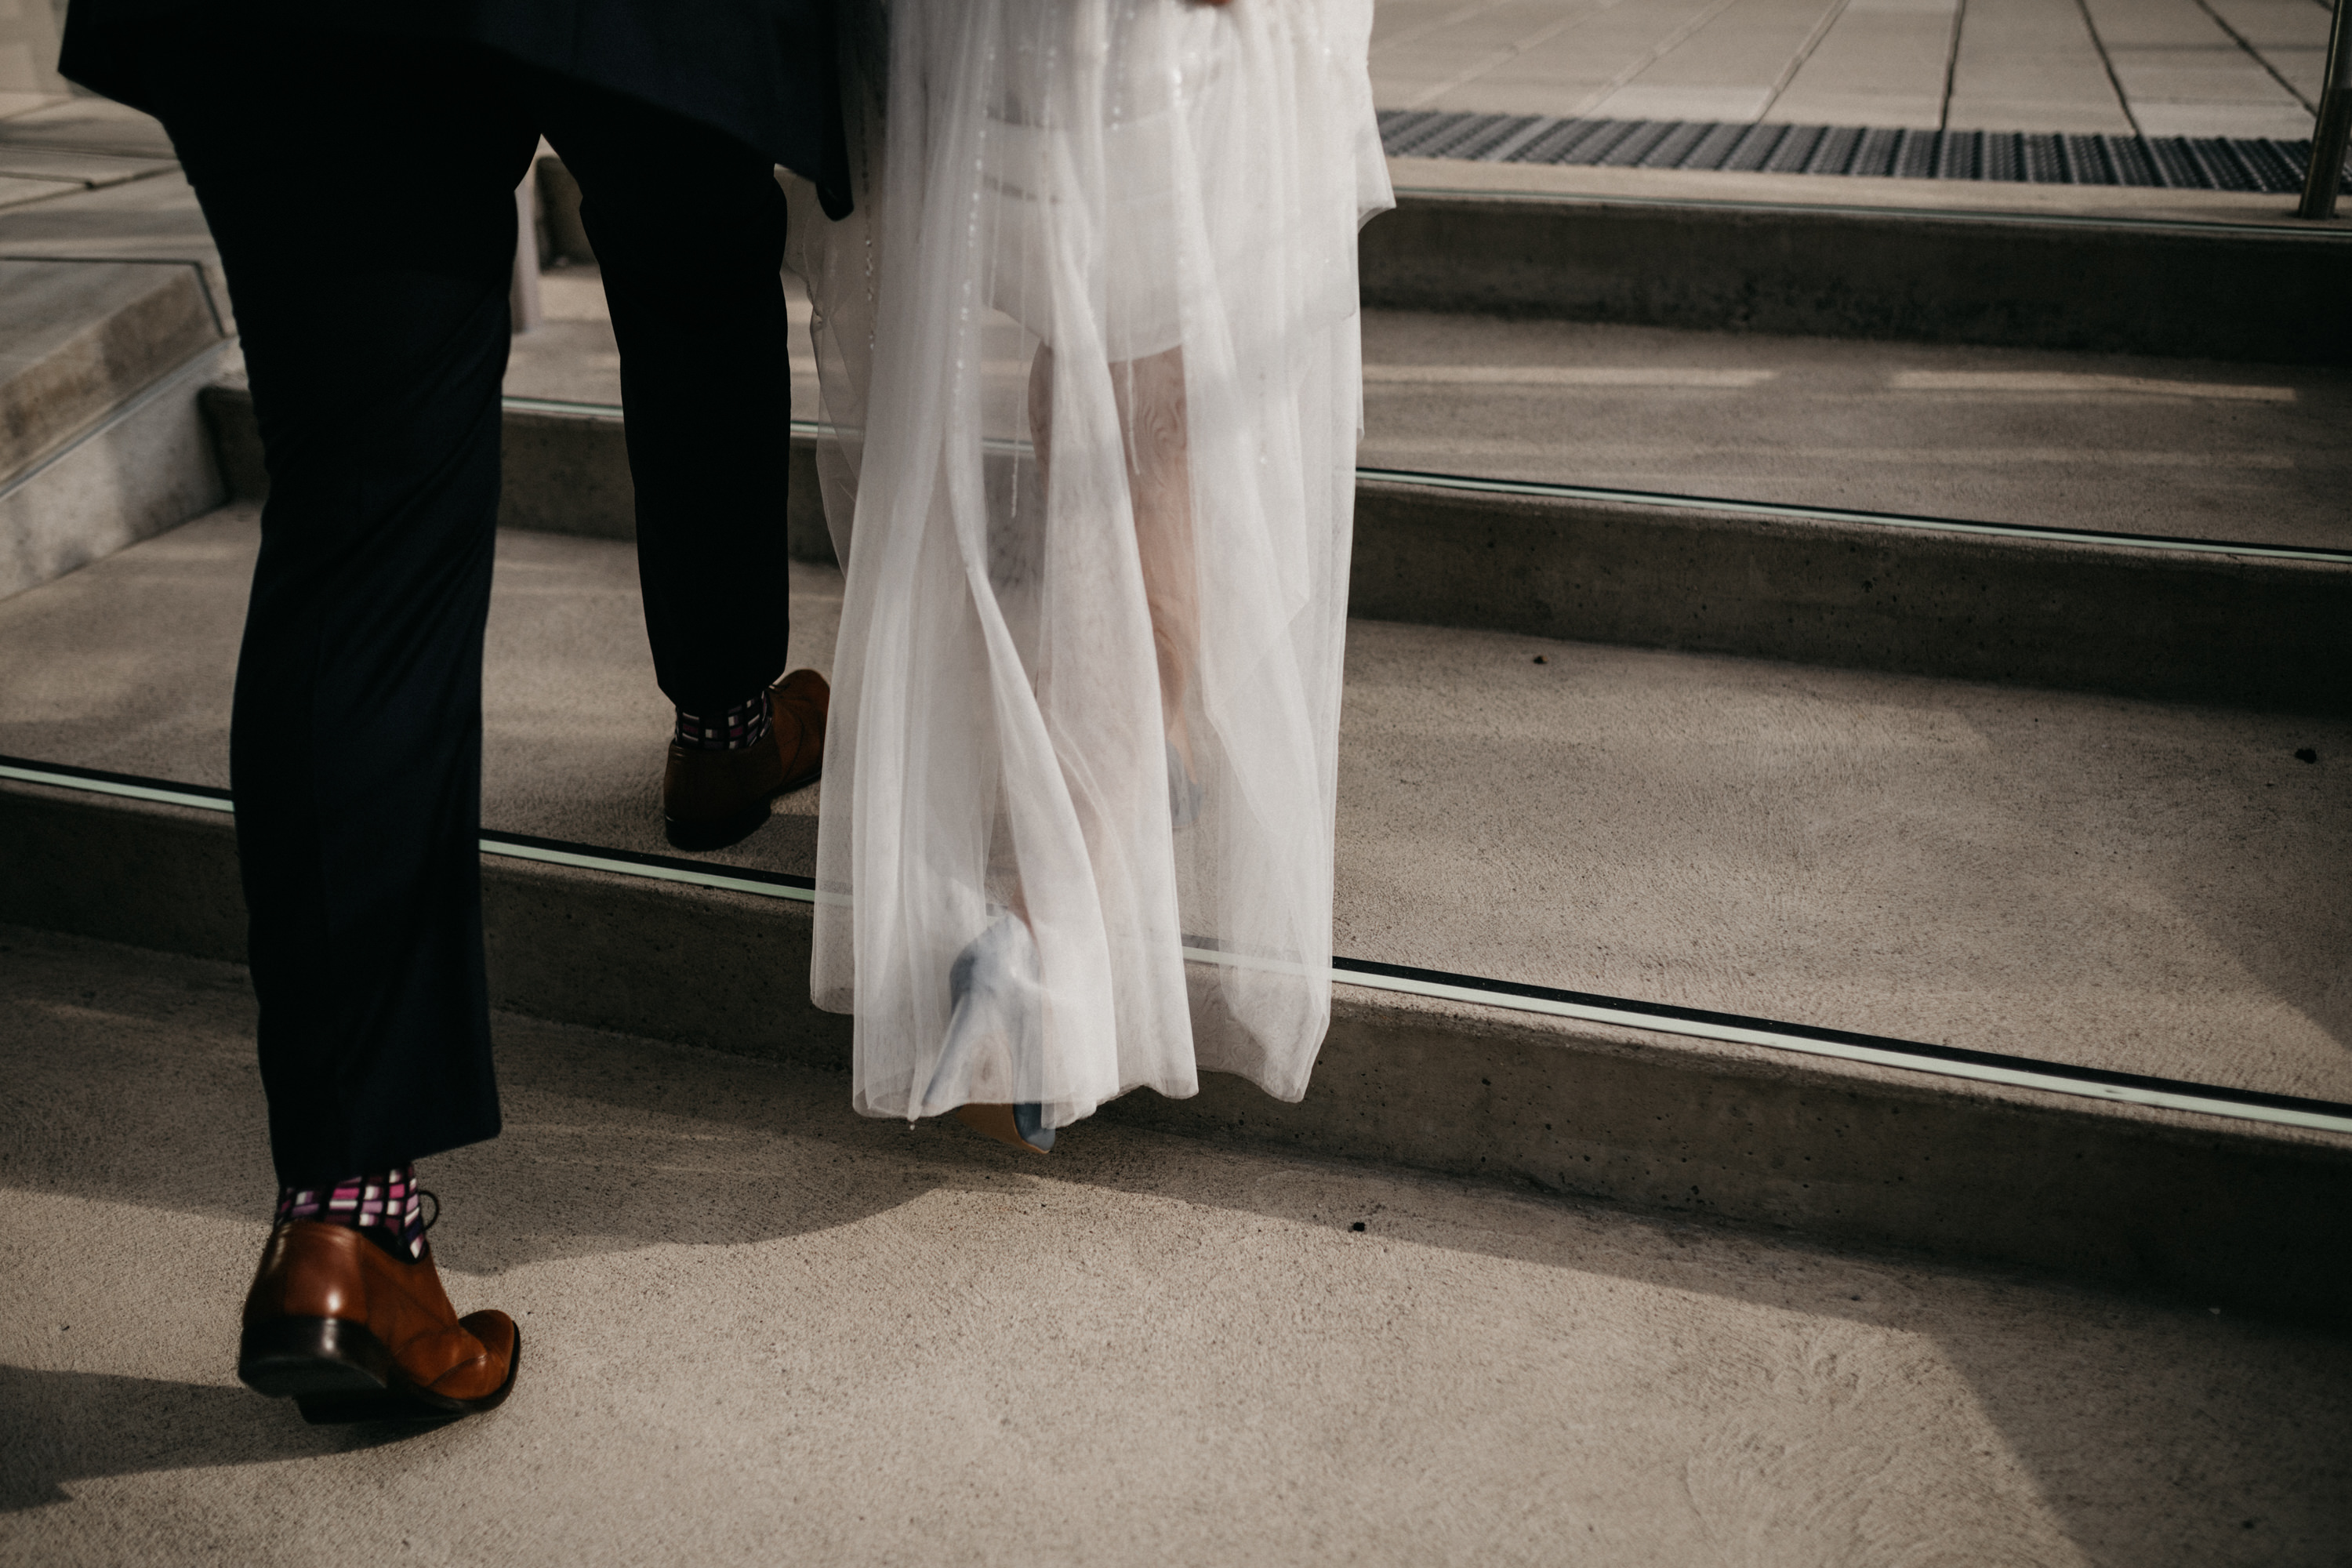 bride and groom feet walking together